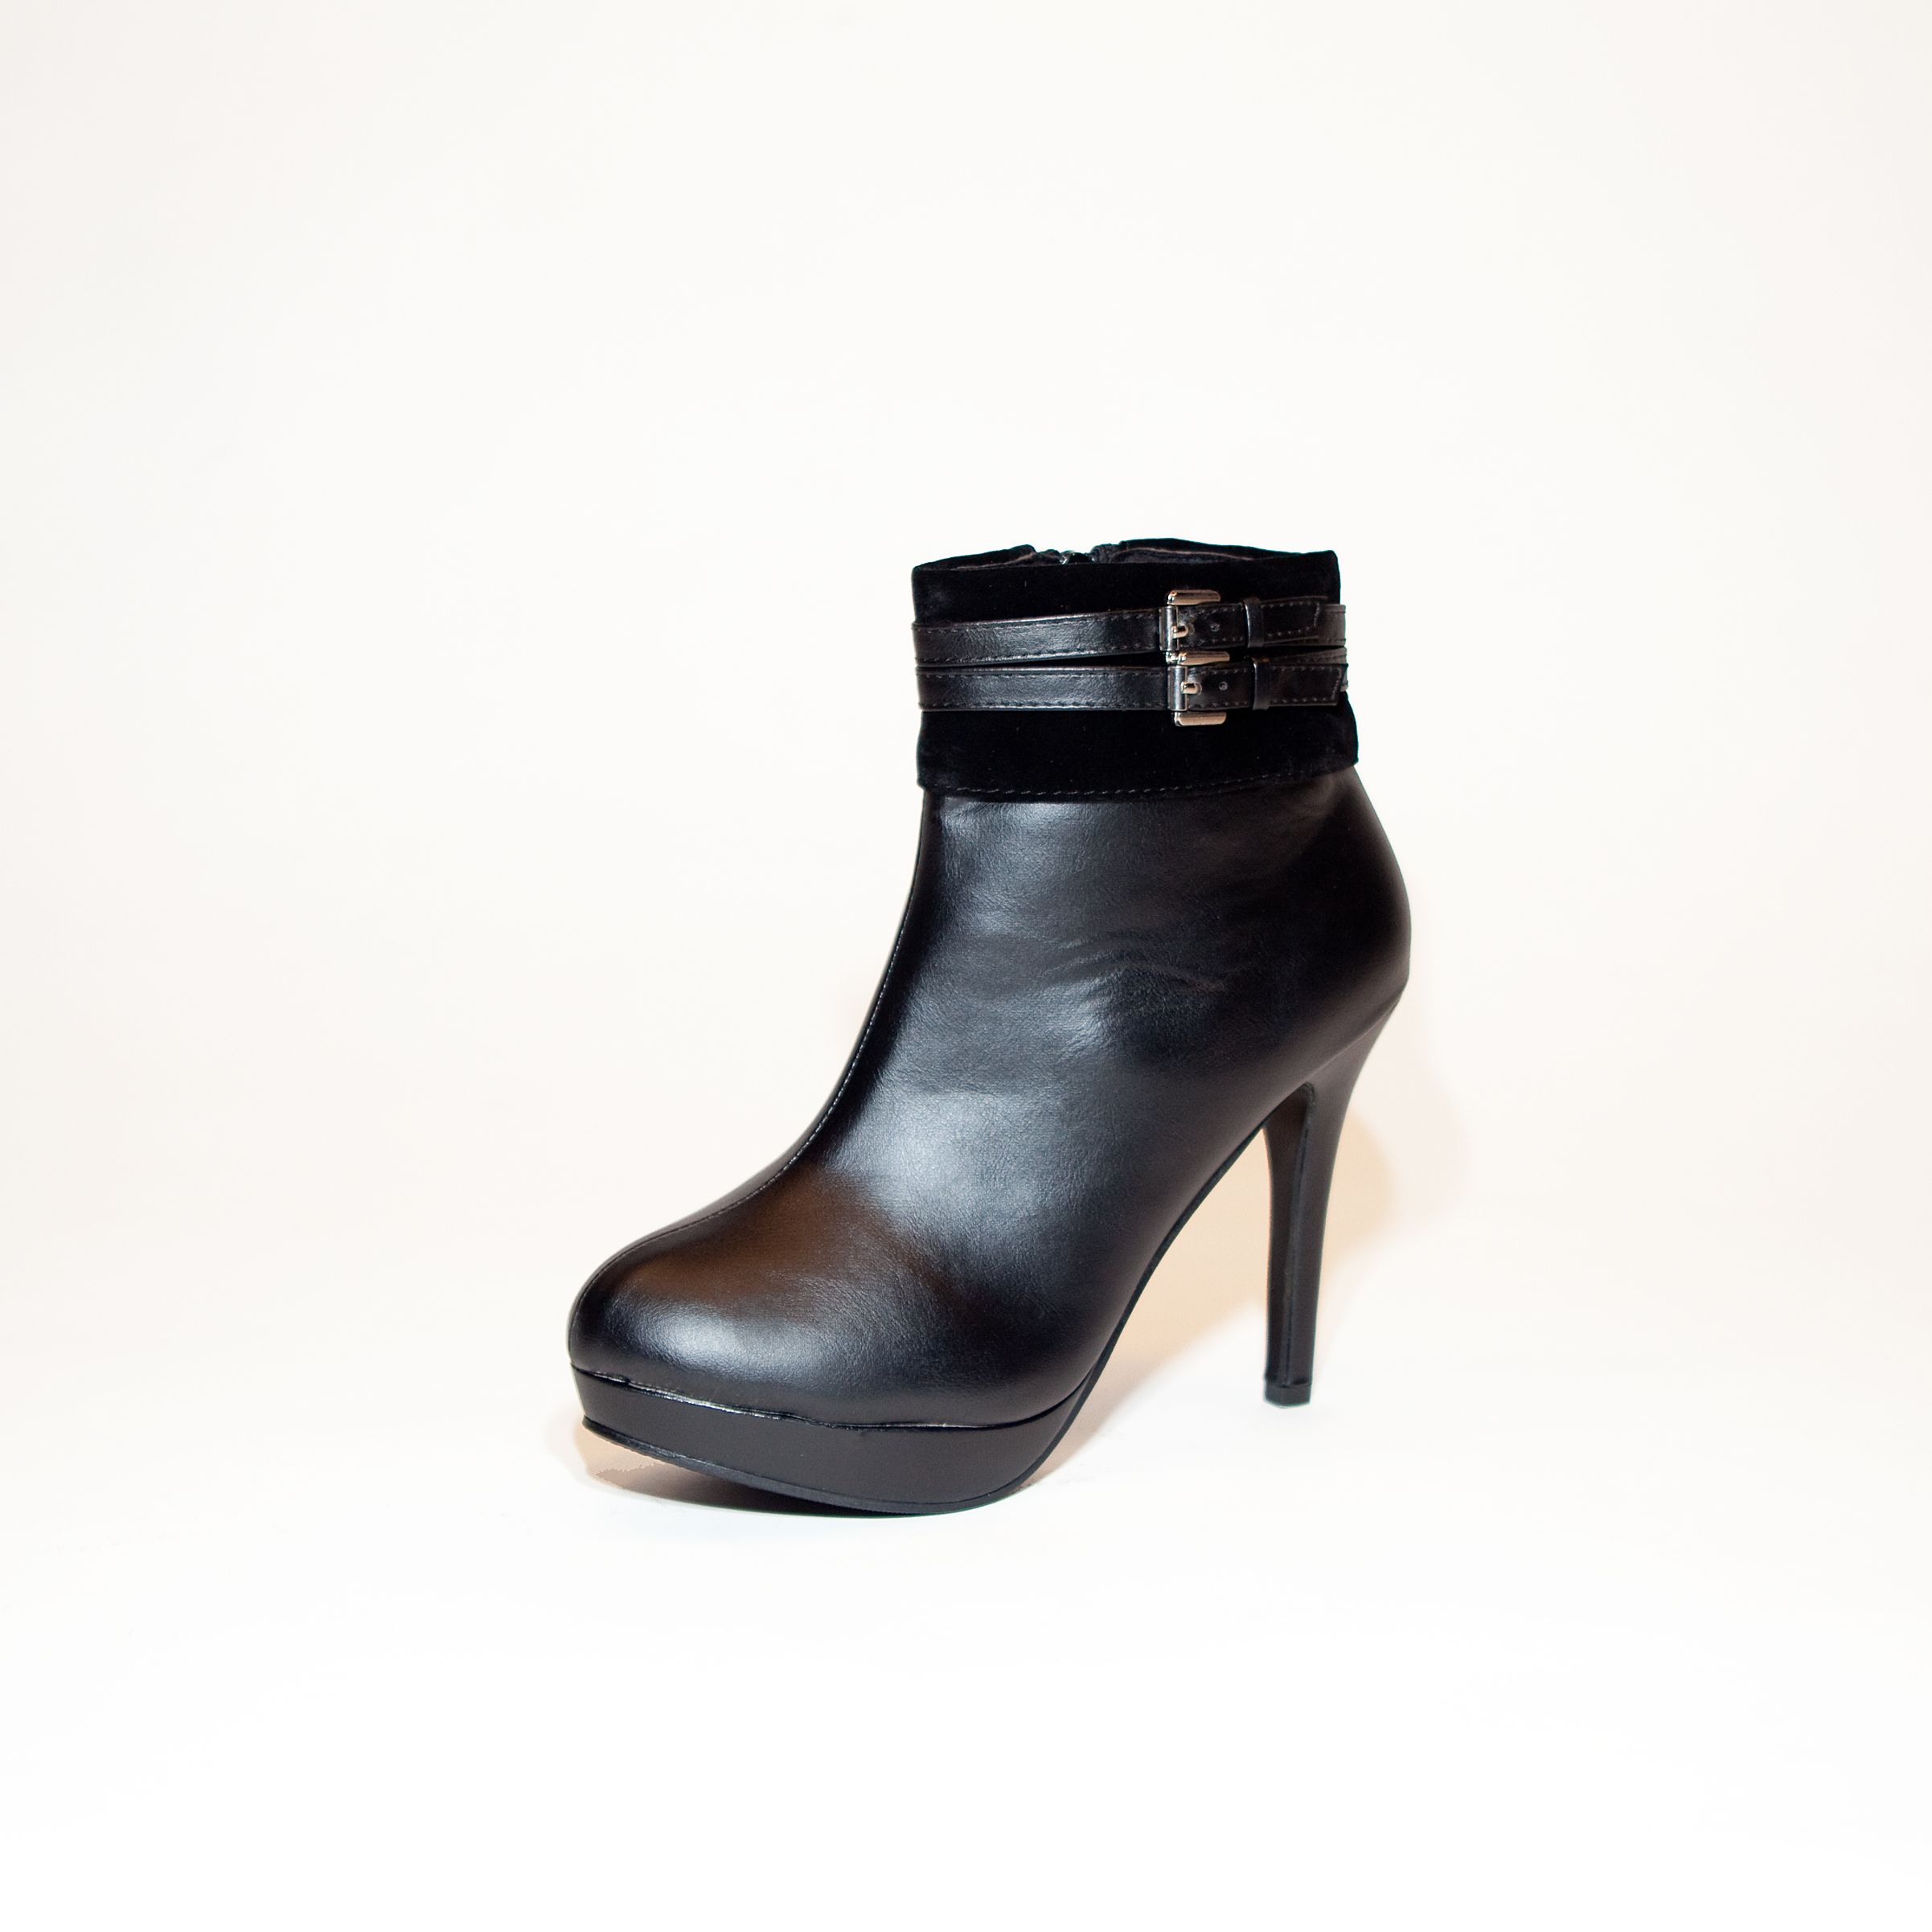 "Almyra!  Step out in this sassy stiletto heeled ankle #boot for a look that will turn heads! This  platform bootie has a sleek silhouette and decorative ankle straps that will dress up any day to night look.  Find ""Almyra"" at www.steam-boots.ca"